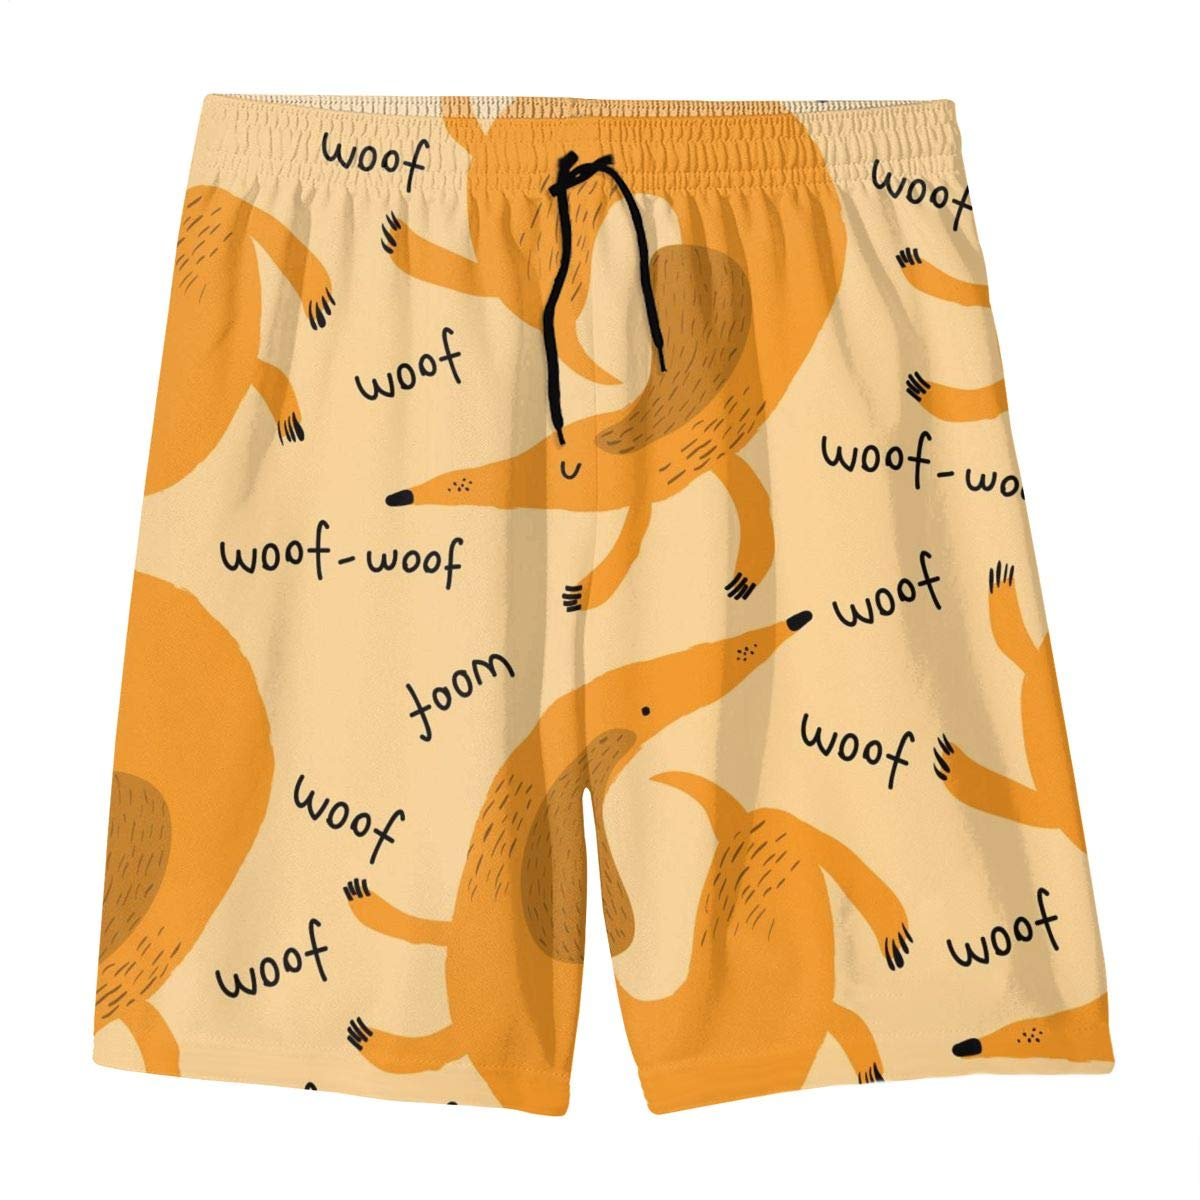 Mens Swim Trunks Yellow Dachshund Printed Beach Board Shorts with Pockets Cool Novelty Bathing Suits for Teen Boys